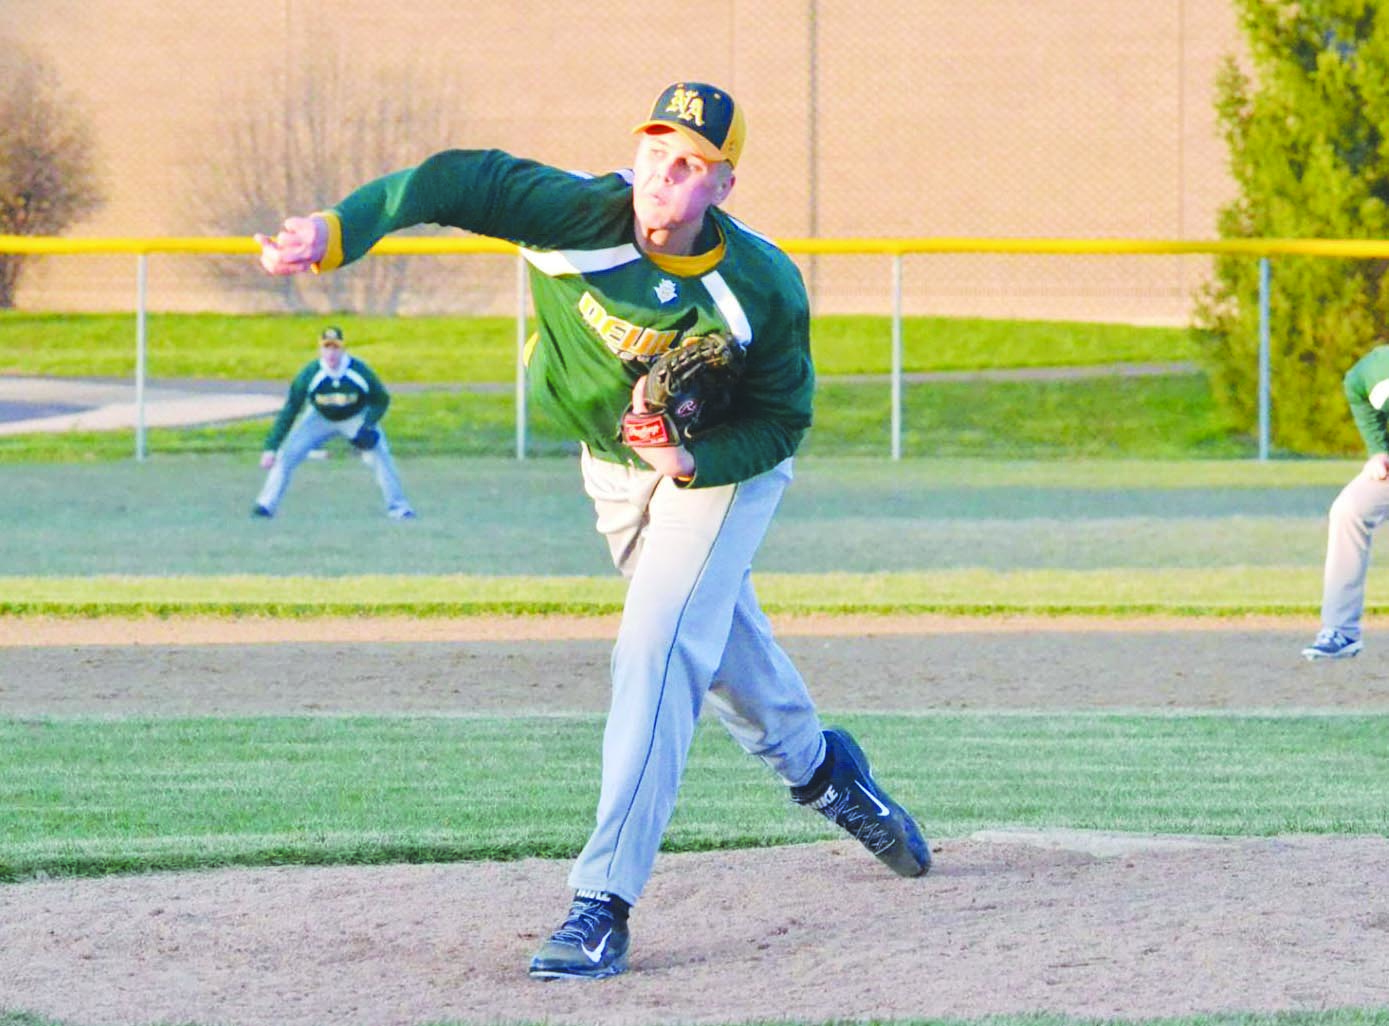 Senior right hander Trey Meade tossed a two-hit shutout and struck out 14 hitters in the North Adams 5-0 win over Manchester on April 25. Photo by Mark Carpenter